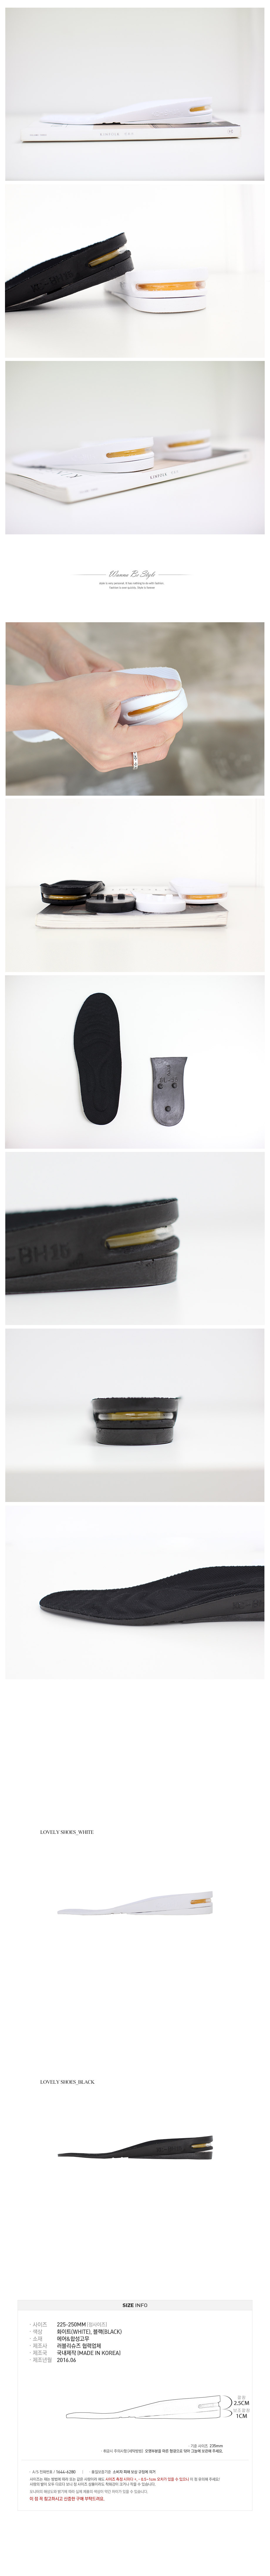 2nd stage air-level height insole